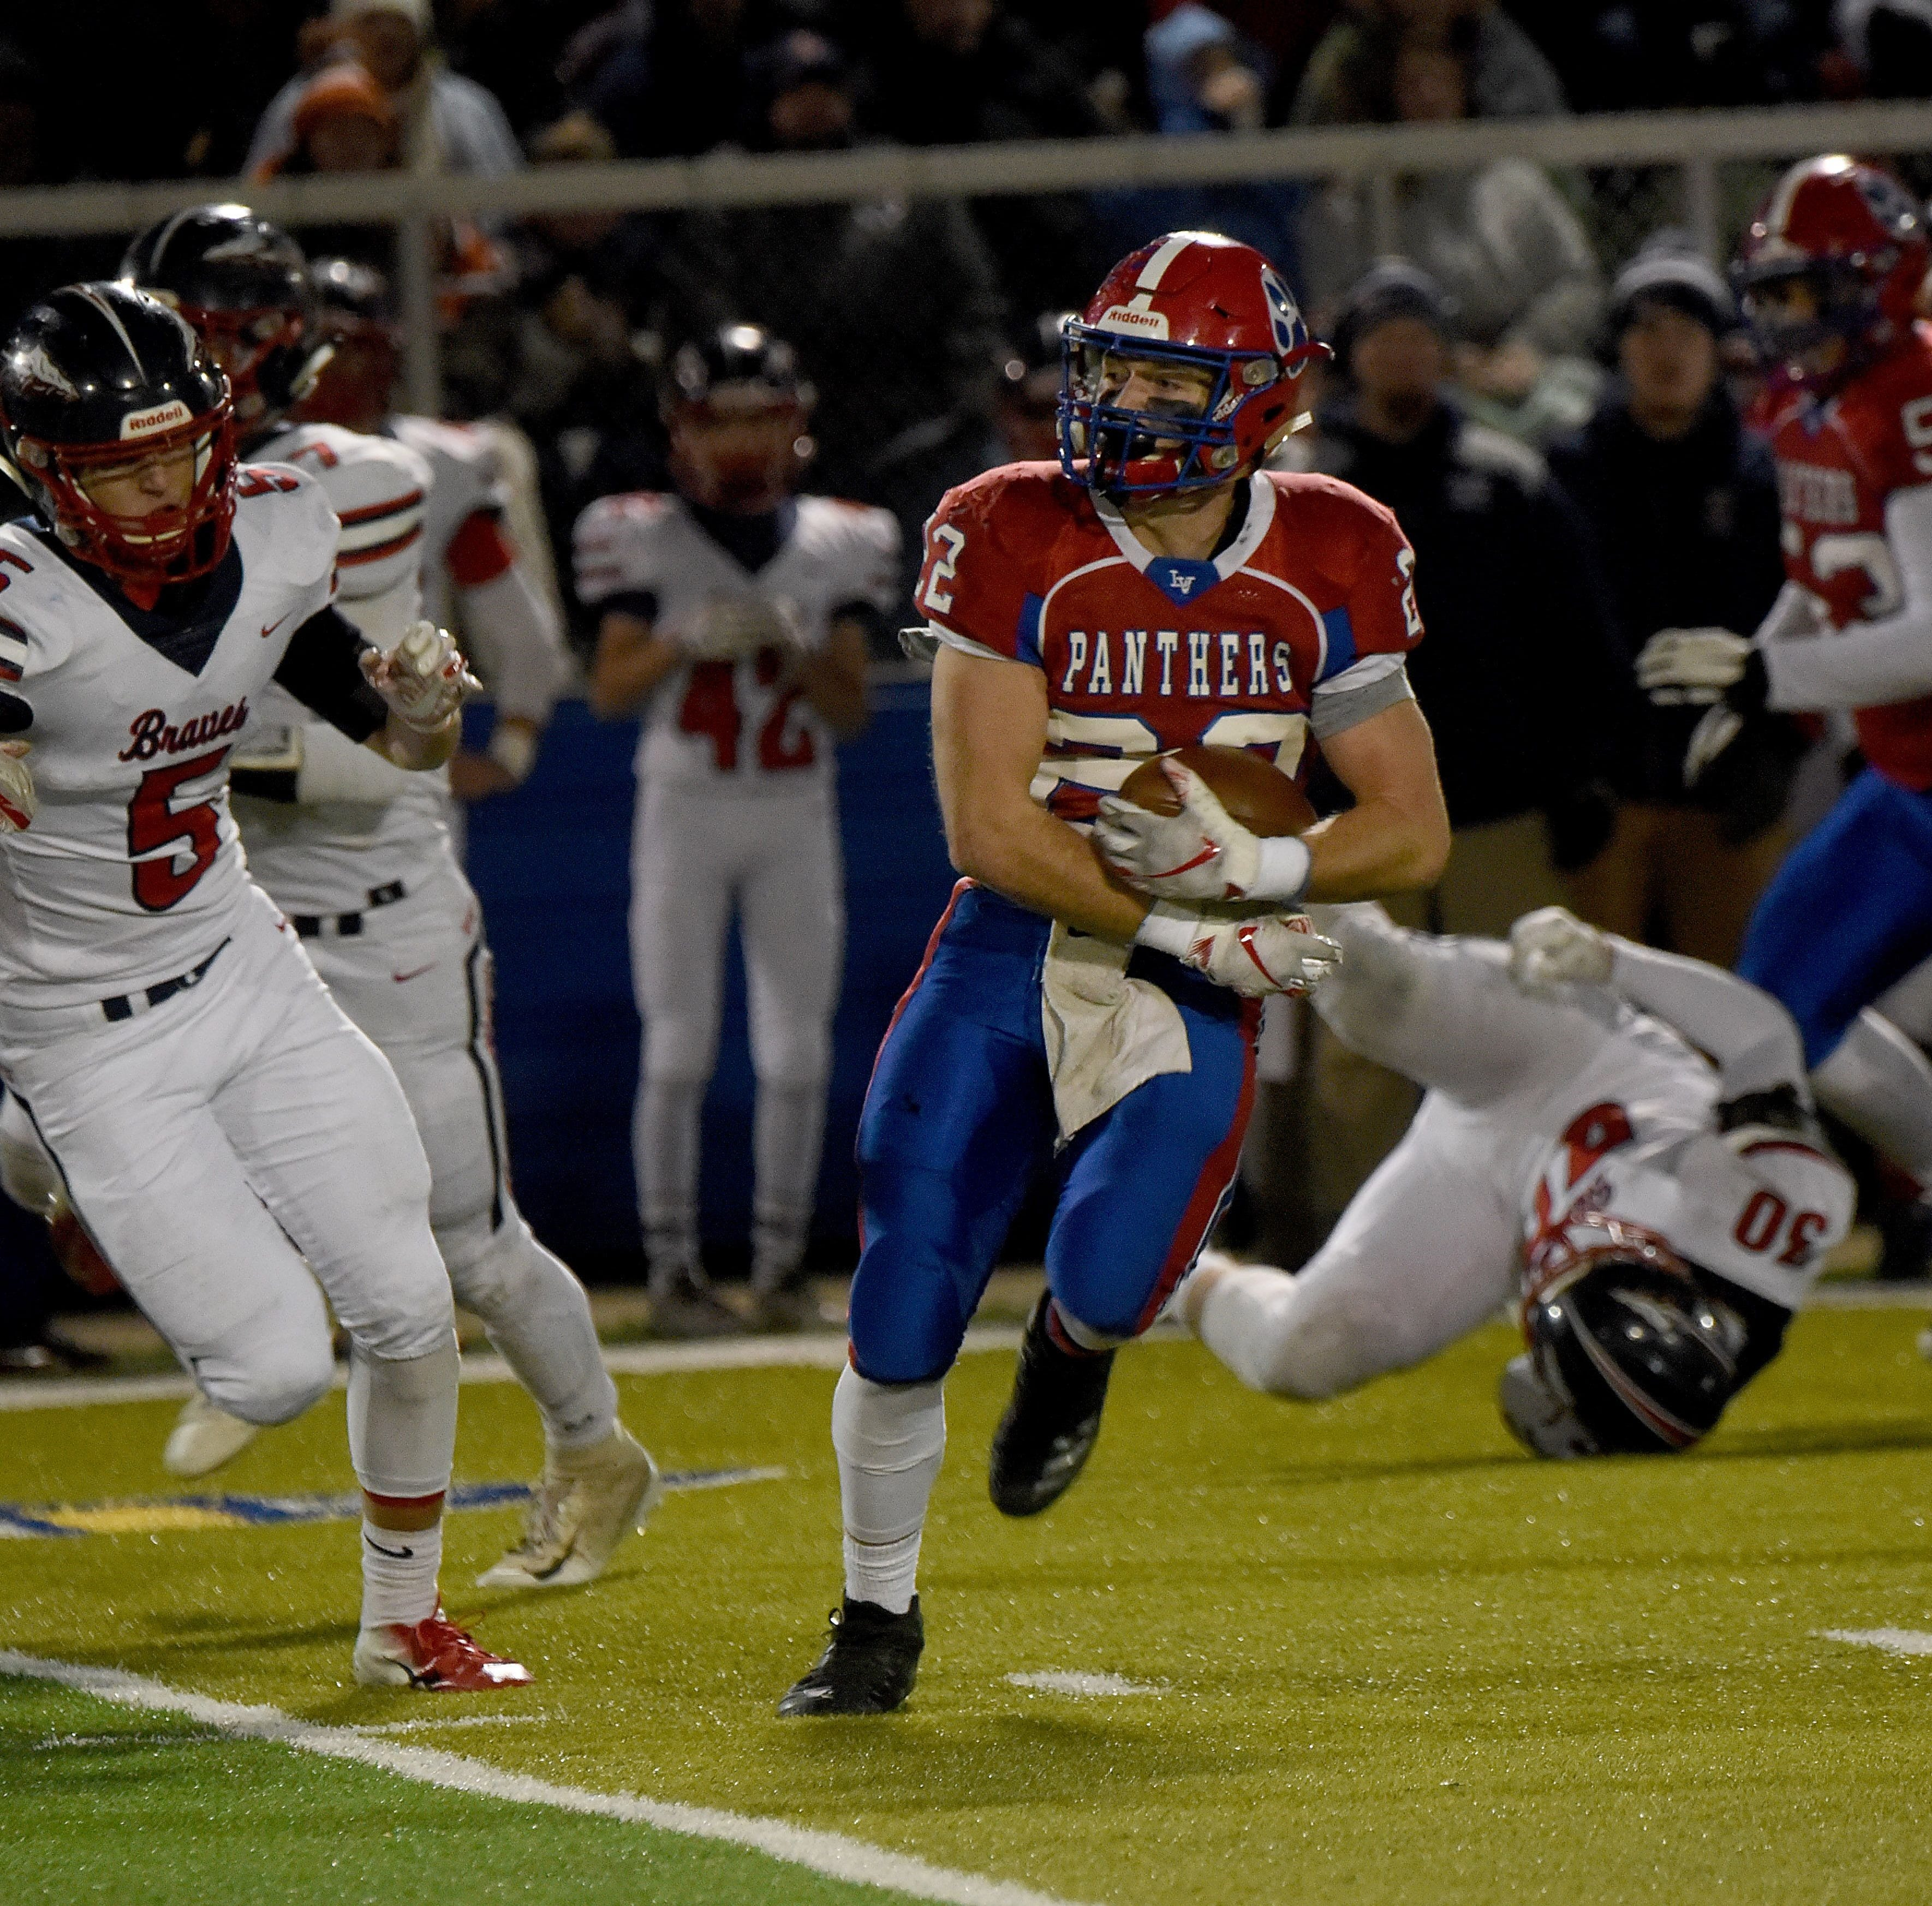 McLaughlin, Licking Valley kick it into a different gear